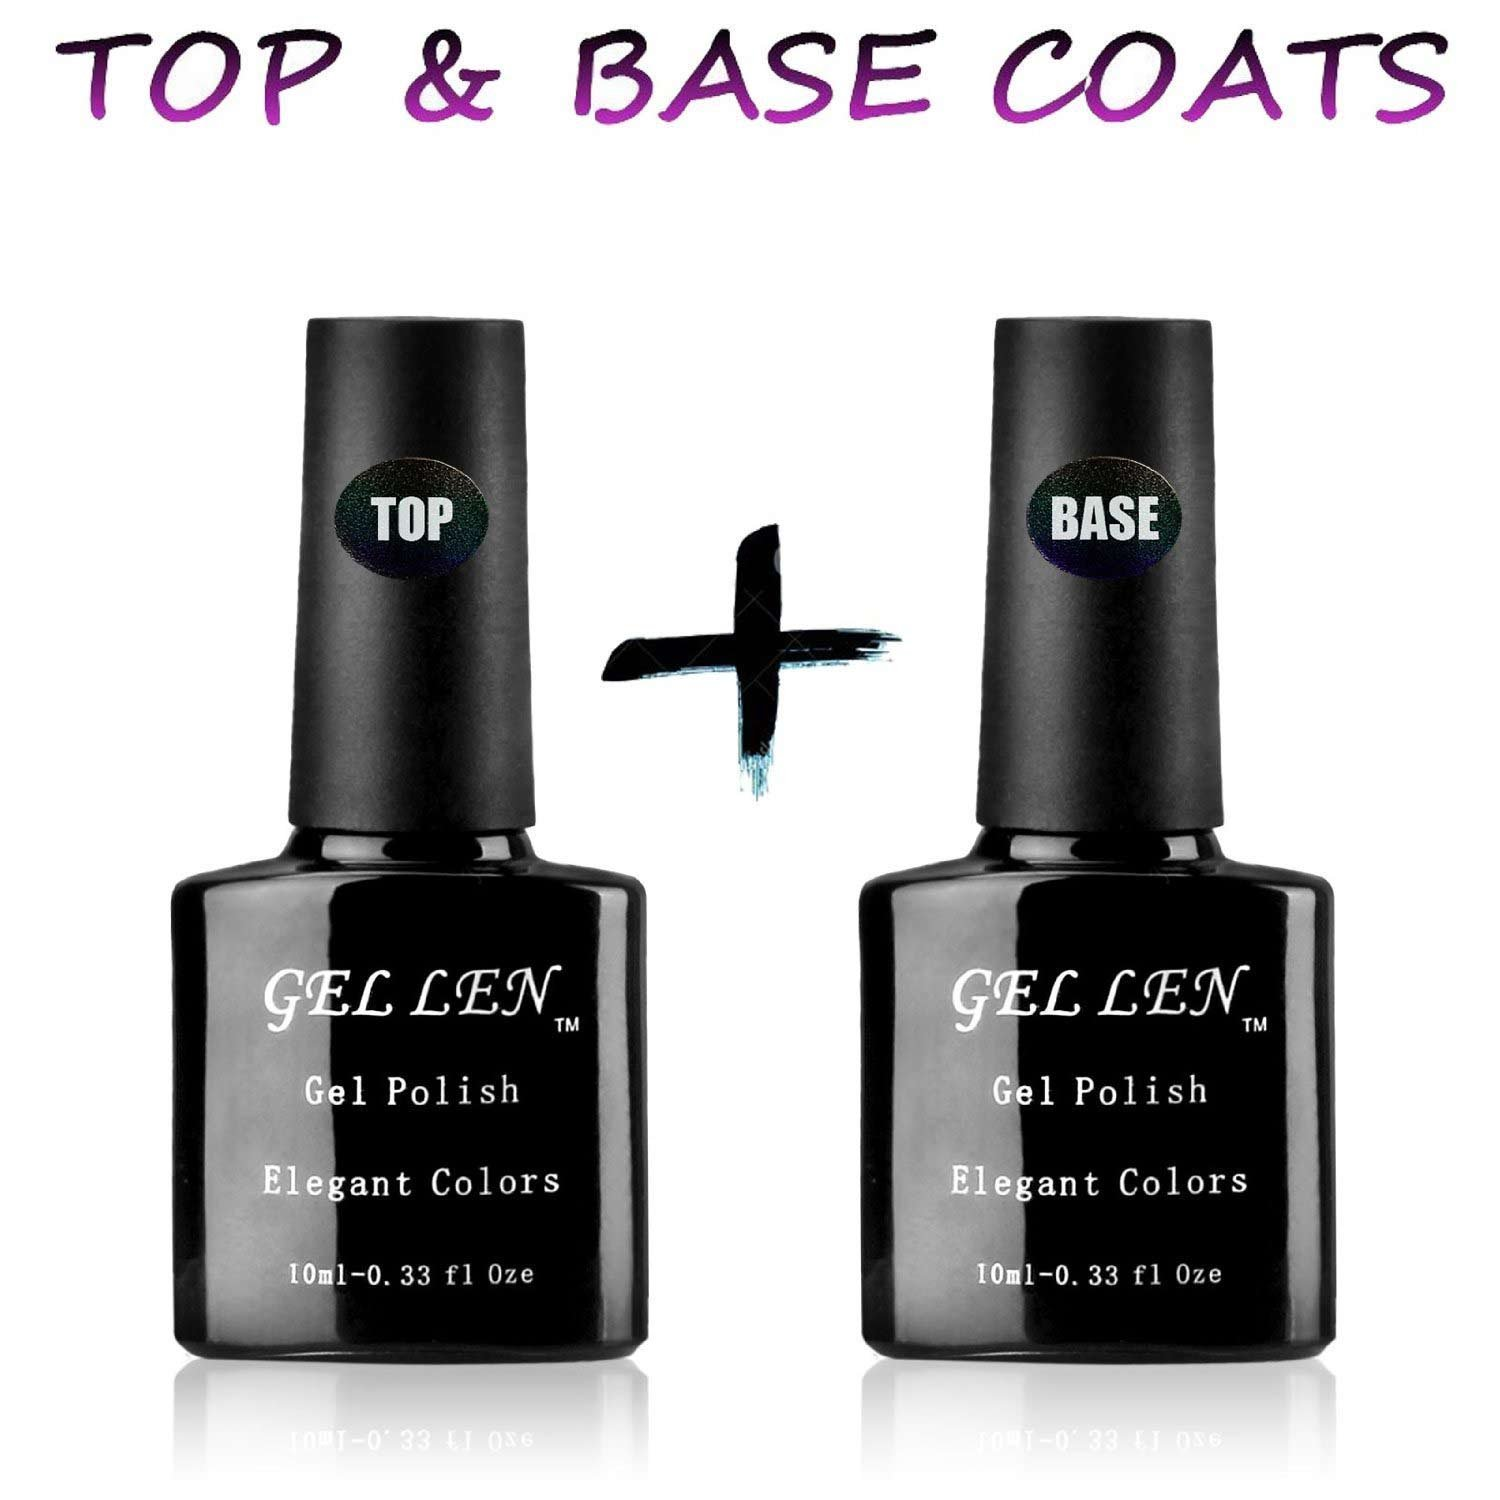 Gellen UV/LED Soak Off Gel Nail Polish Top Coat and Base Coat Set - 10ml Each